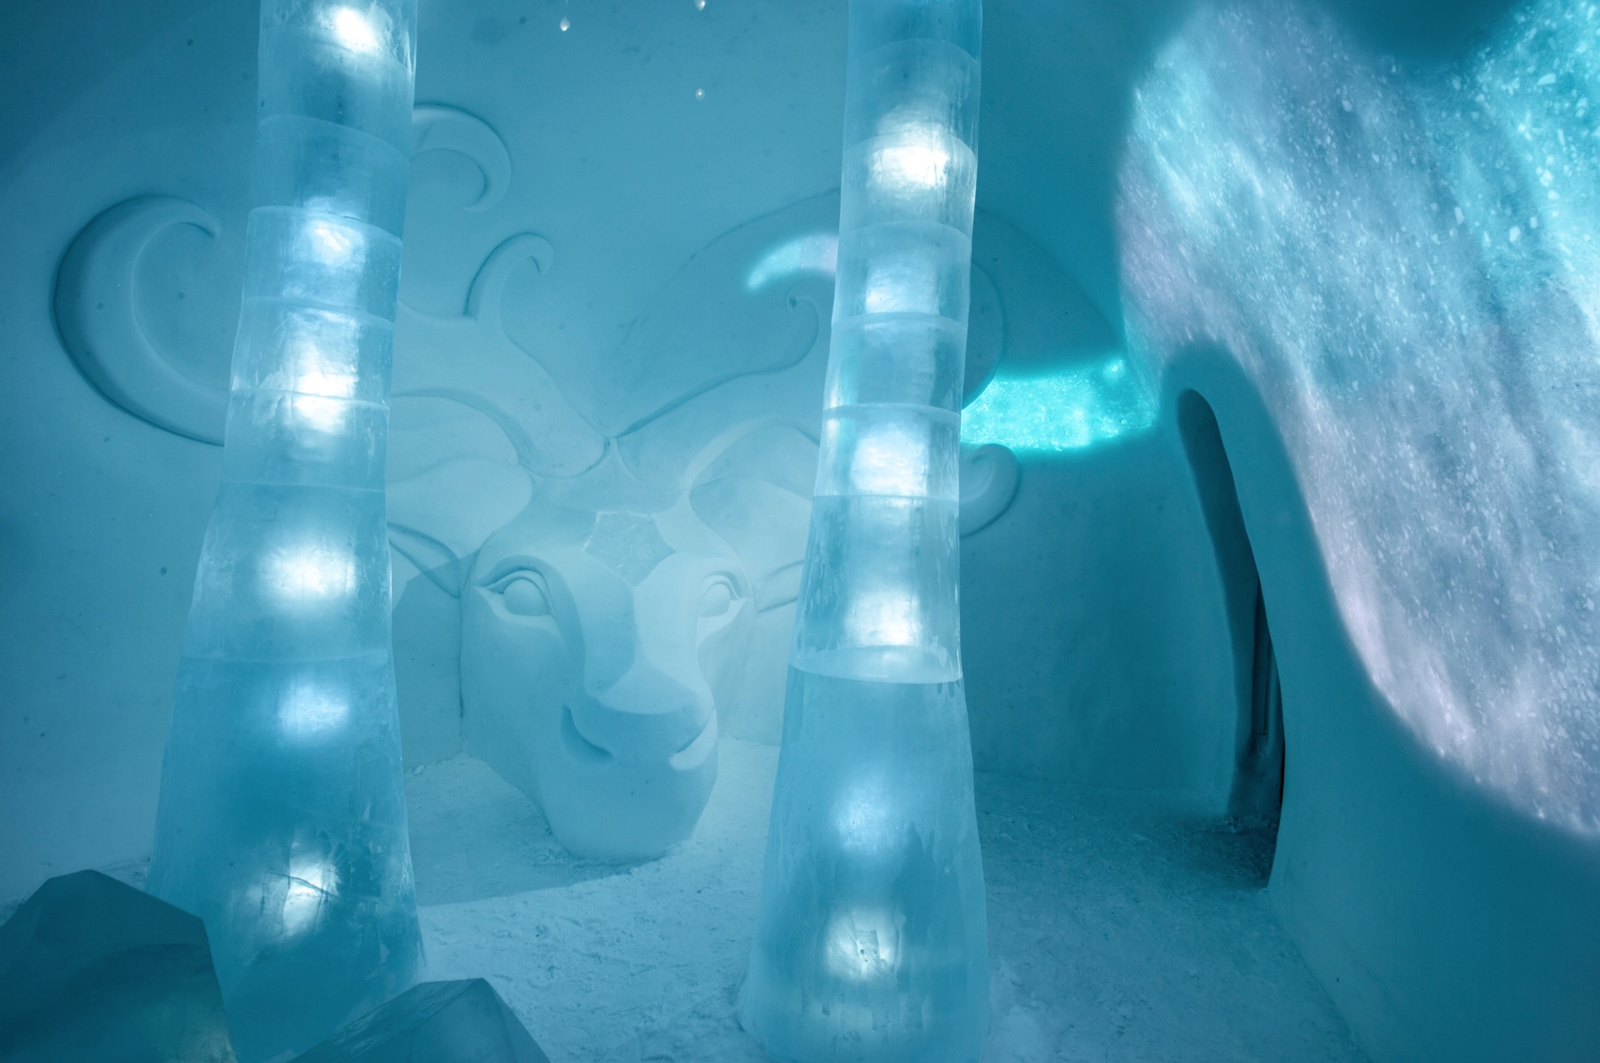 ❄️Check Out This Chilling Design at Sweden's Icehotel! icehotel ❄️Check Out This Chilling Design at Sweden's Icehotel! 9